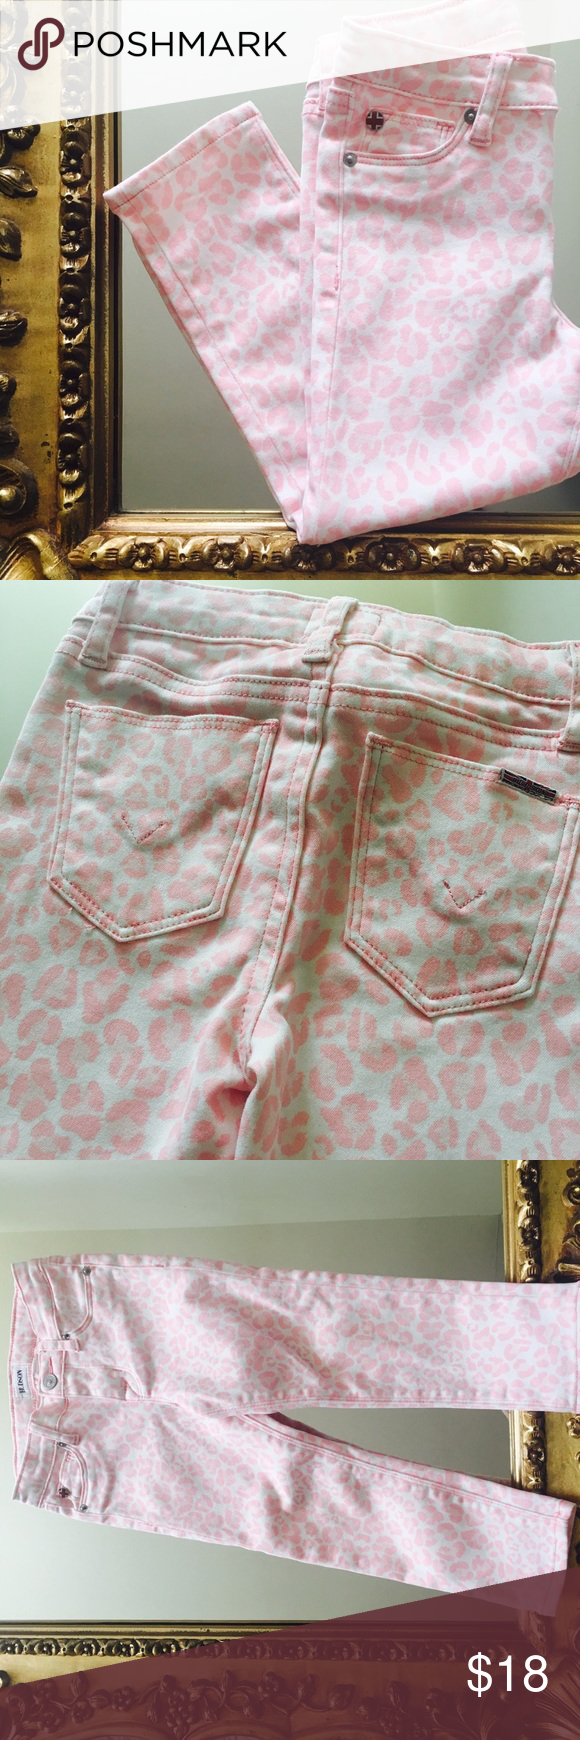 The CUTEST Hudson Toddler Skinnies Ever!!! Pink leopard print skinnies by Hudson. 3t, true to size!!! These have a good bit of stretch. Hudson Jeans Bottoms